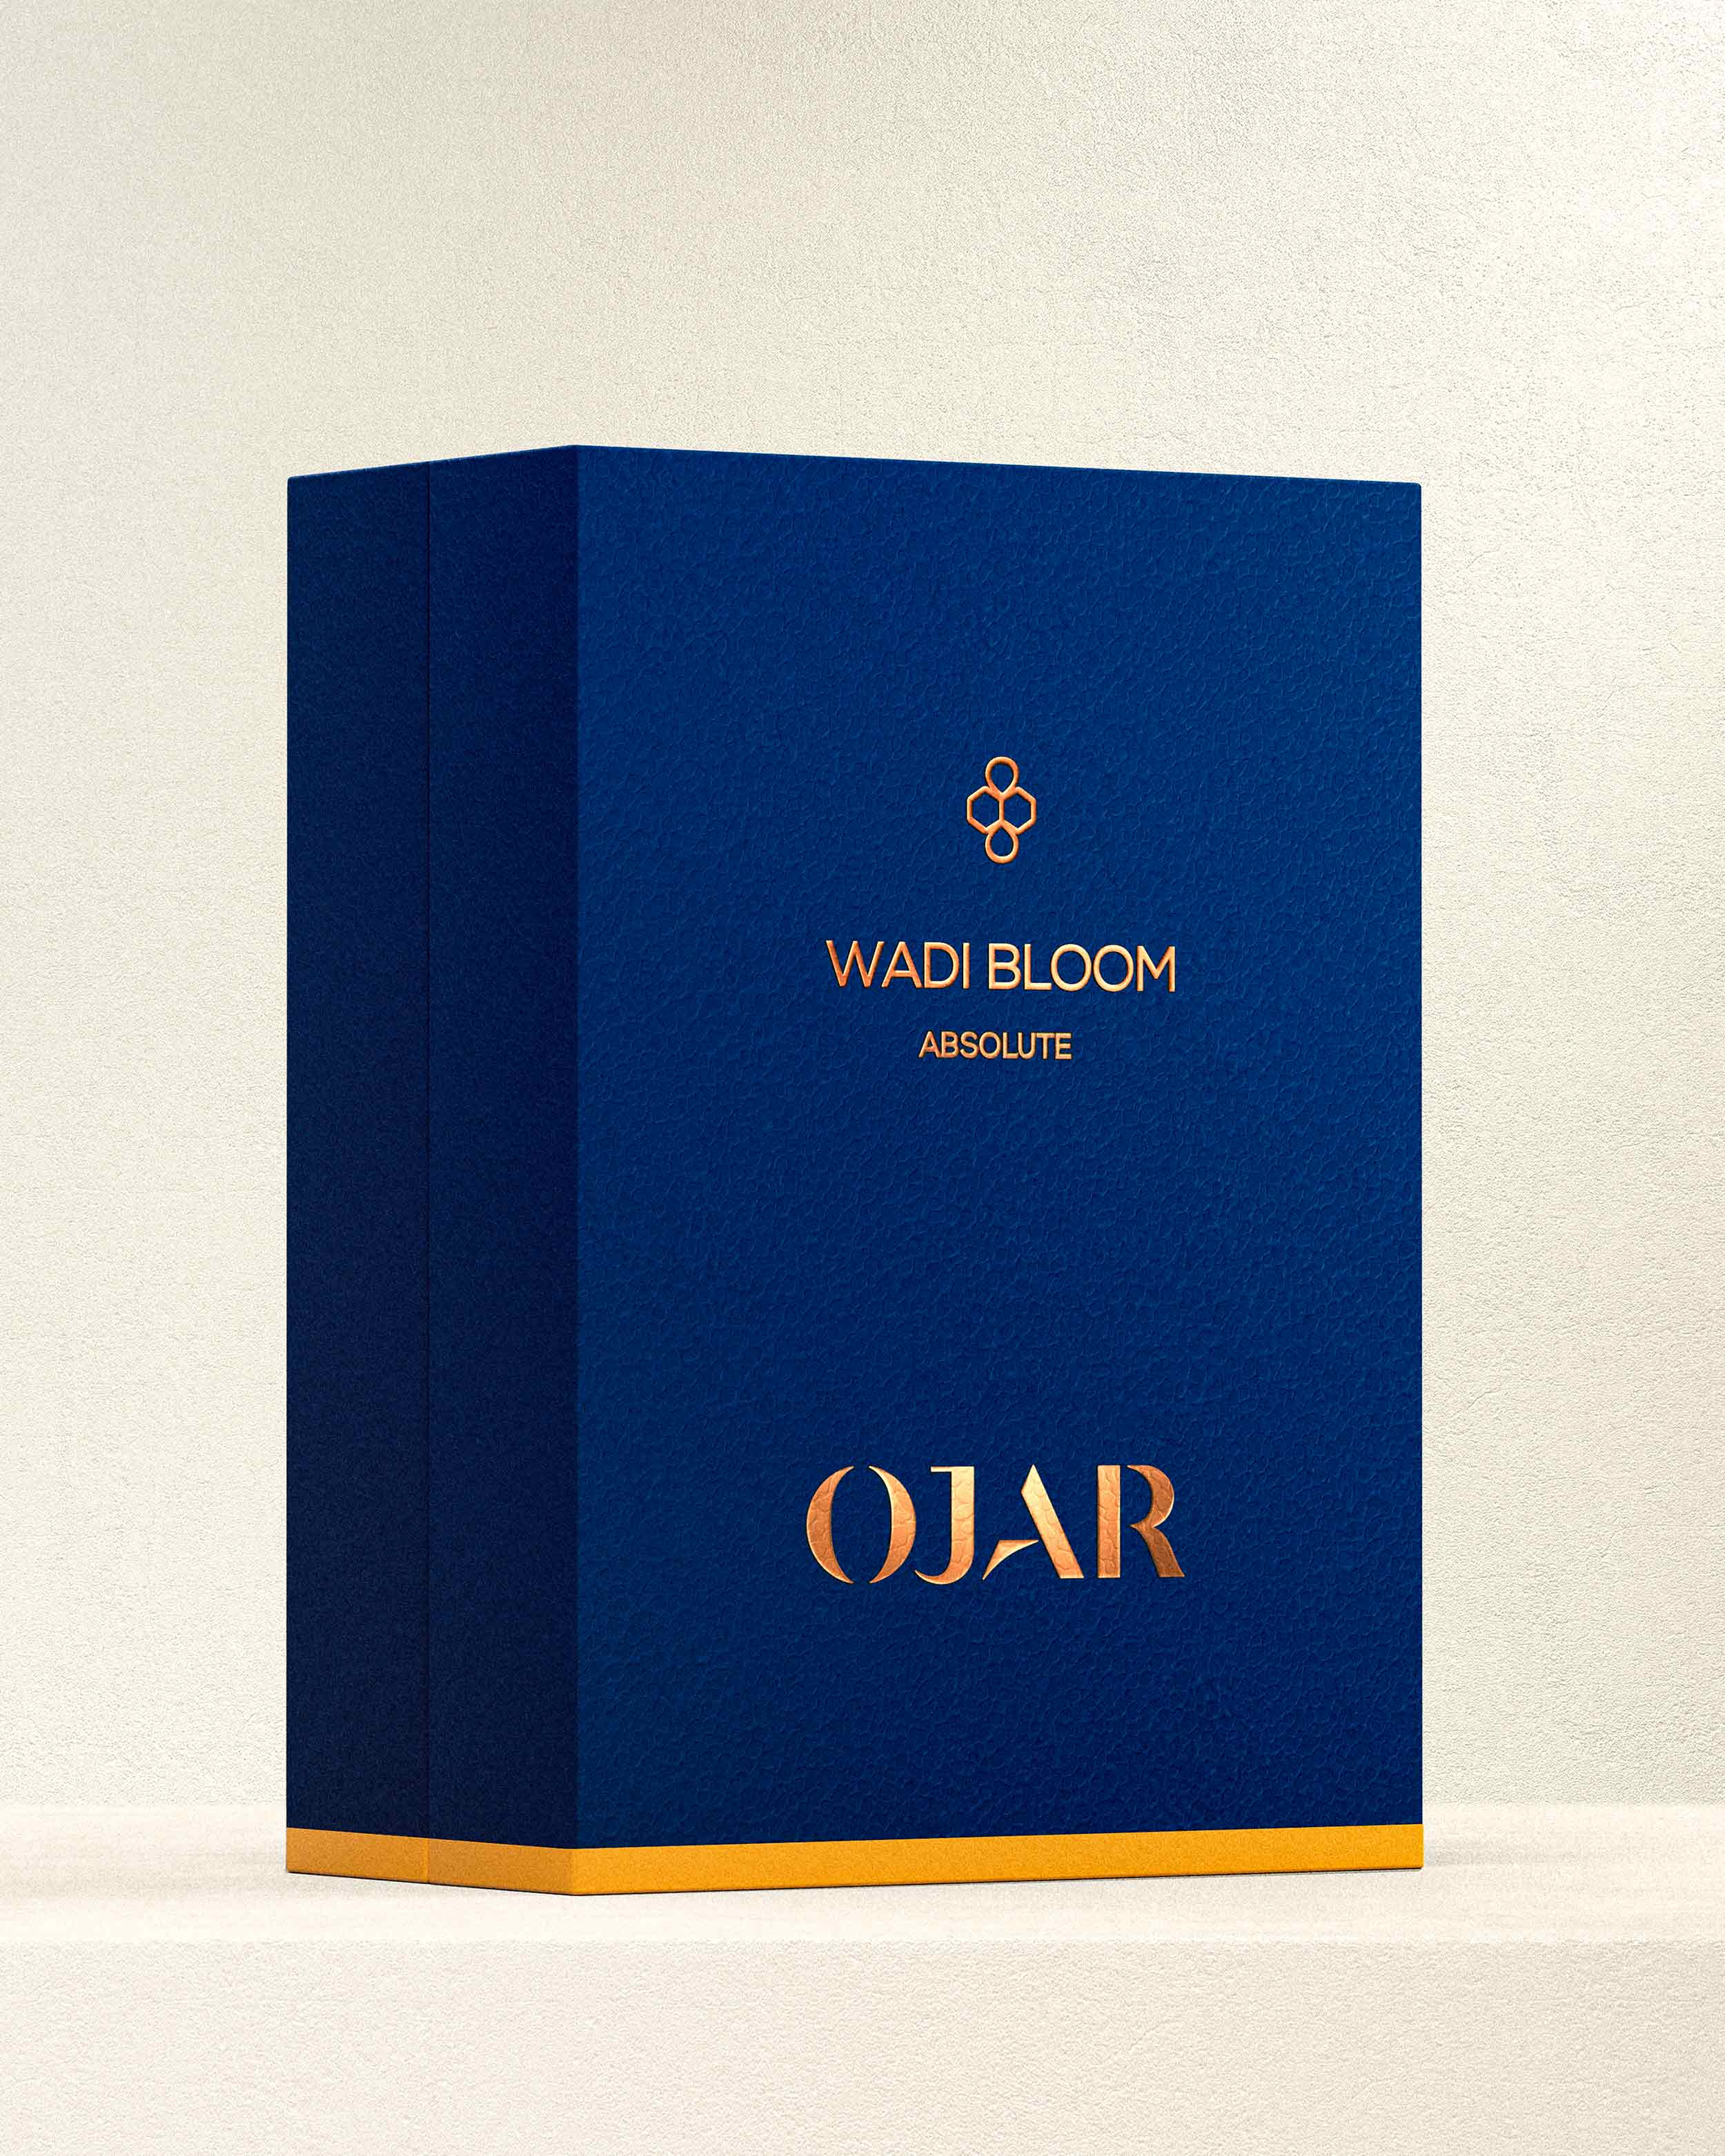 OJAR Absolute Wadi Bloom Perfume Pack